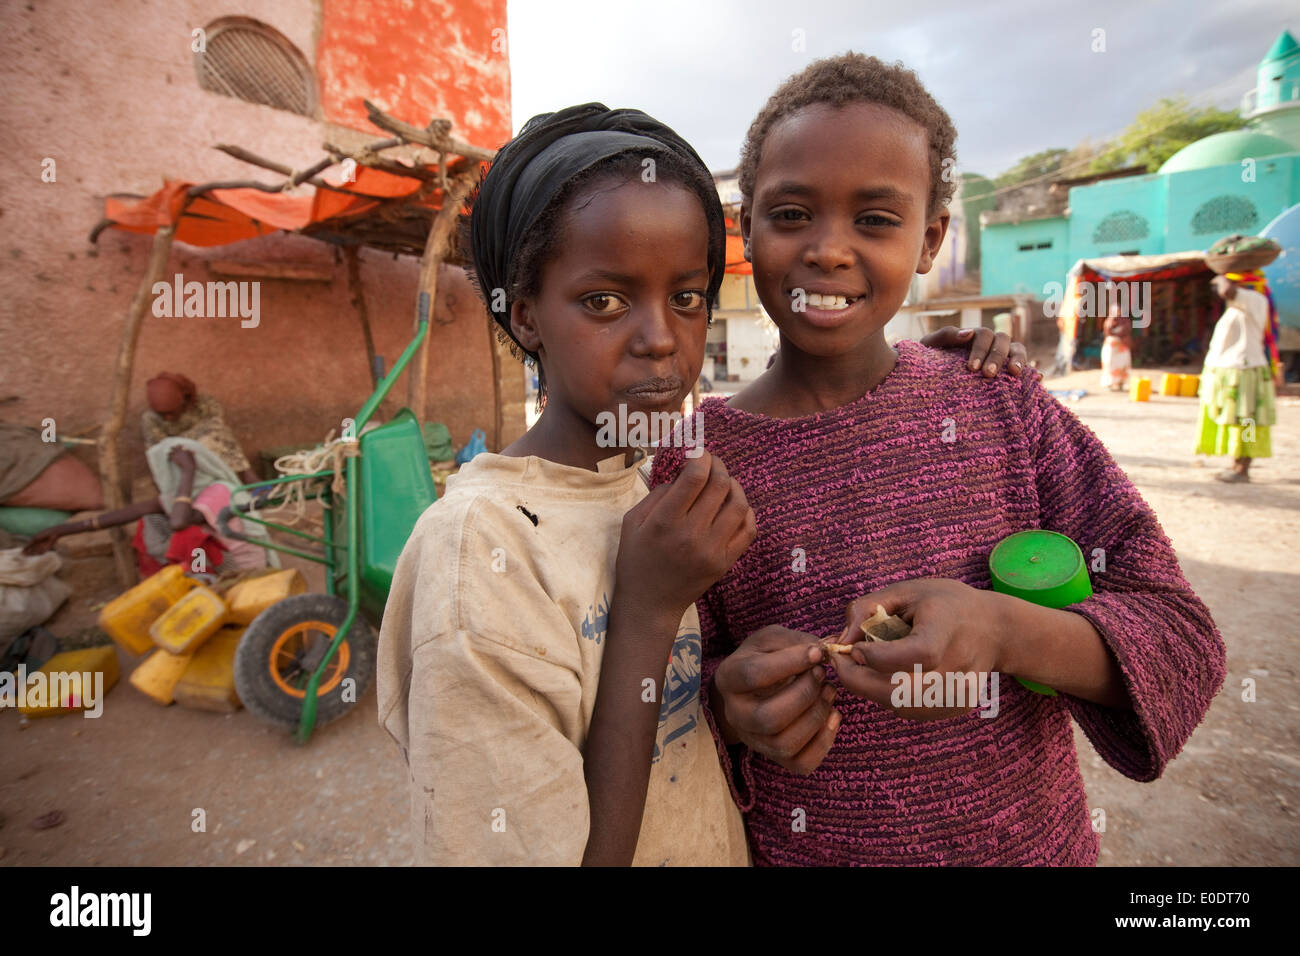 Children in Harar, Ethiopia. - Stock Image